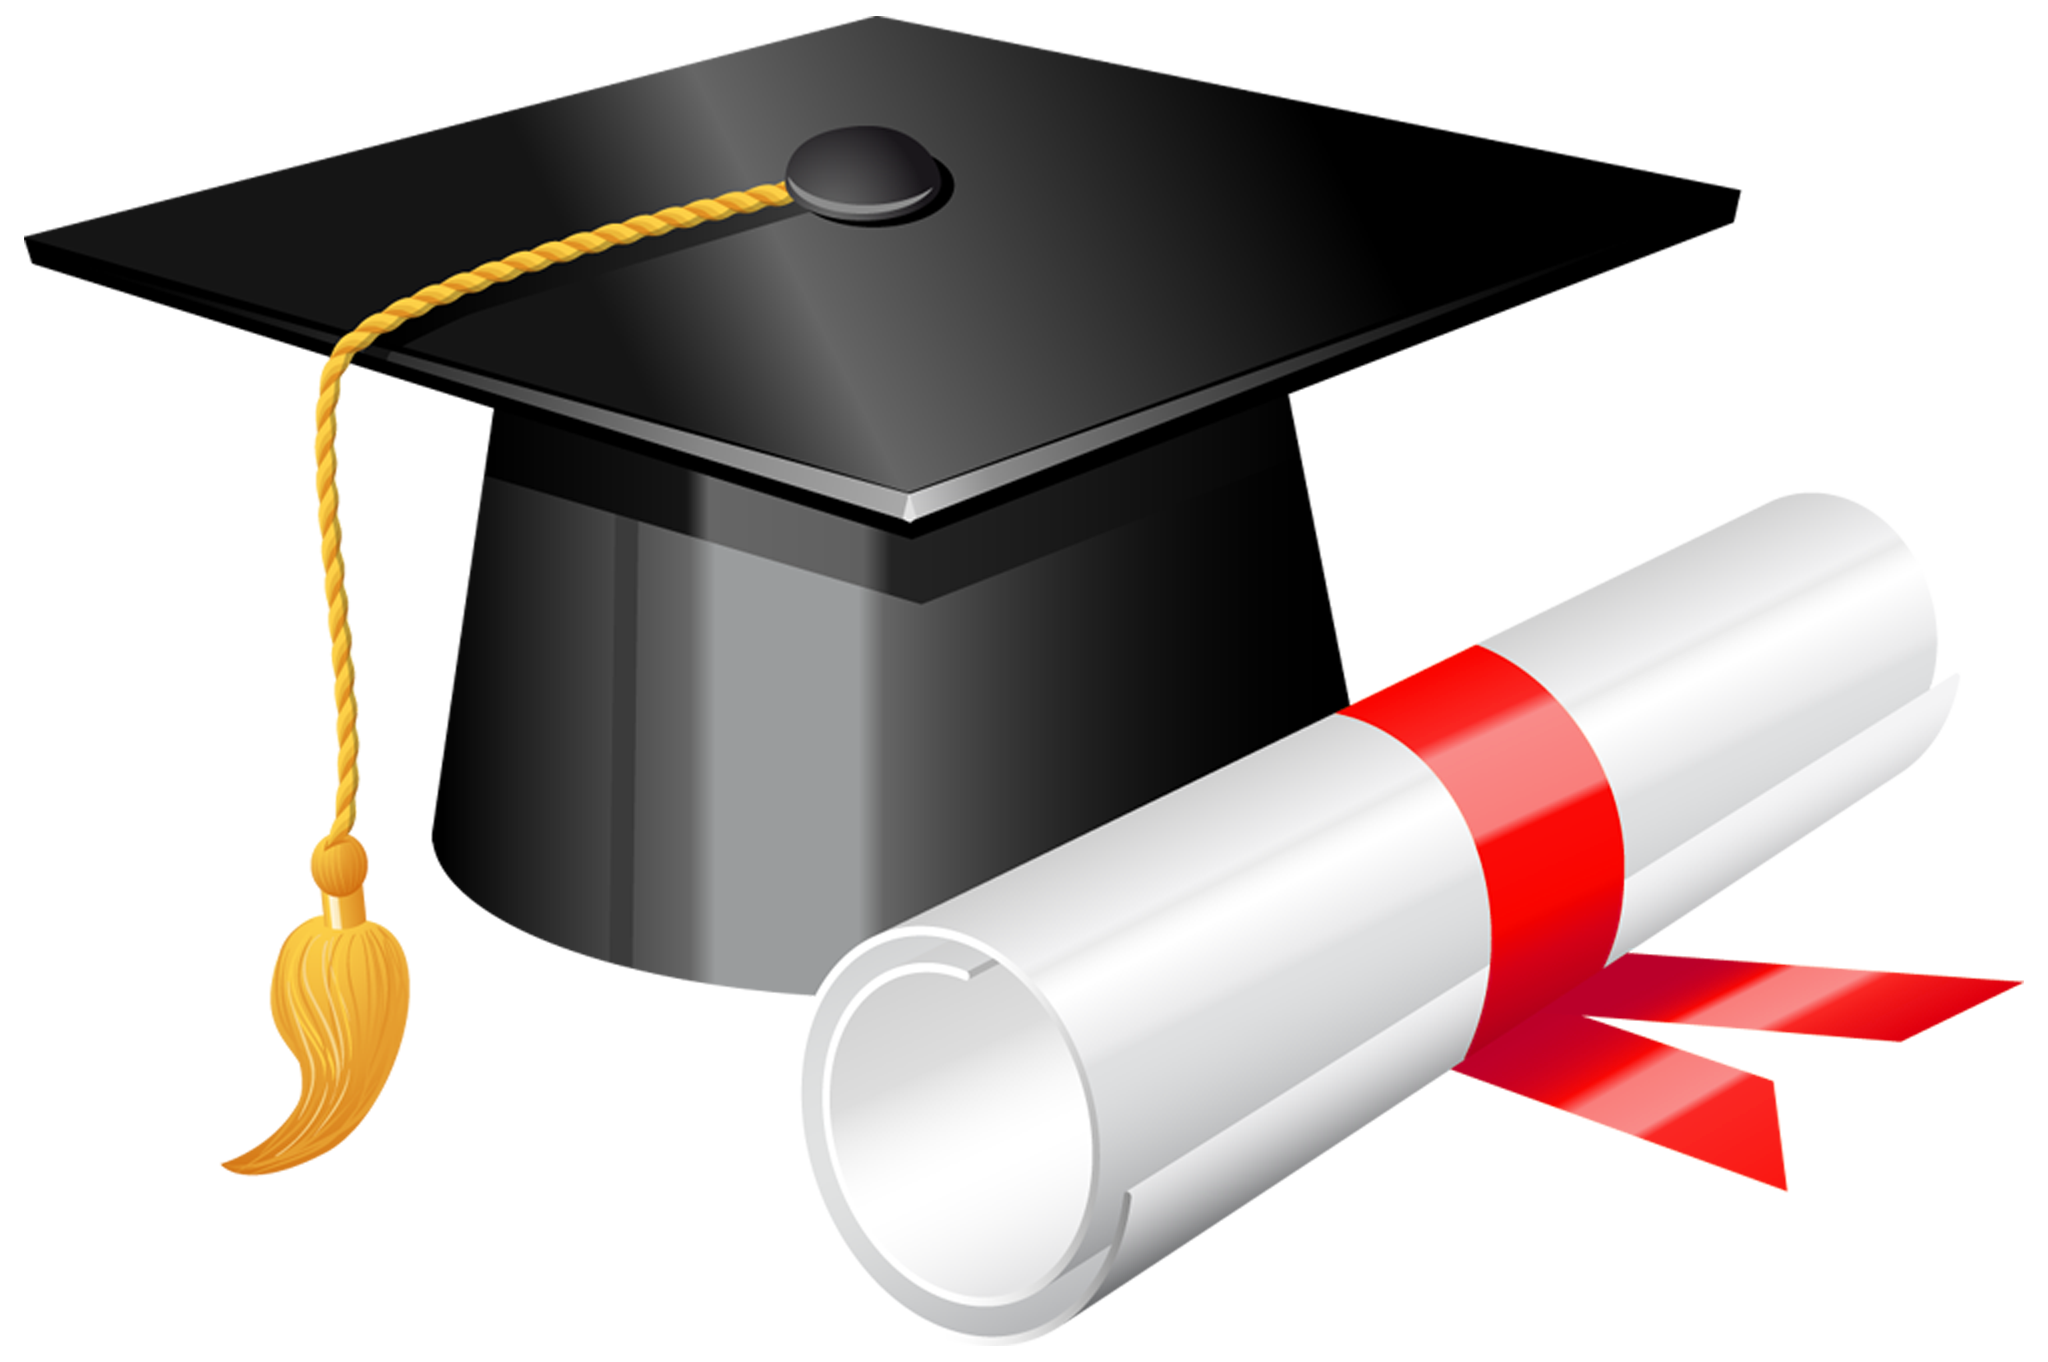 Graduation Transparent PNG Pictures - Free Icons and PNG ...